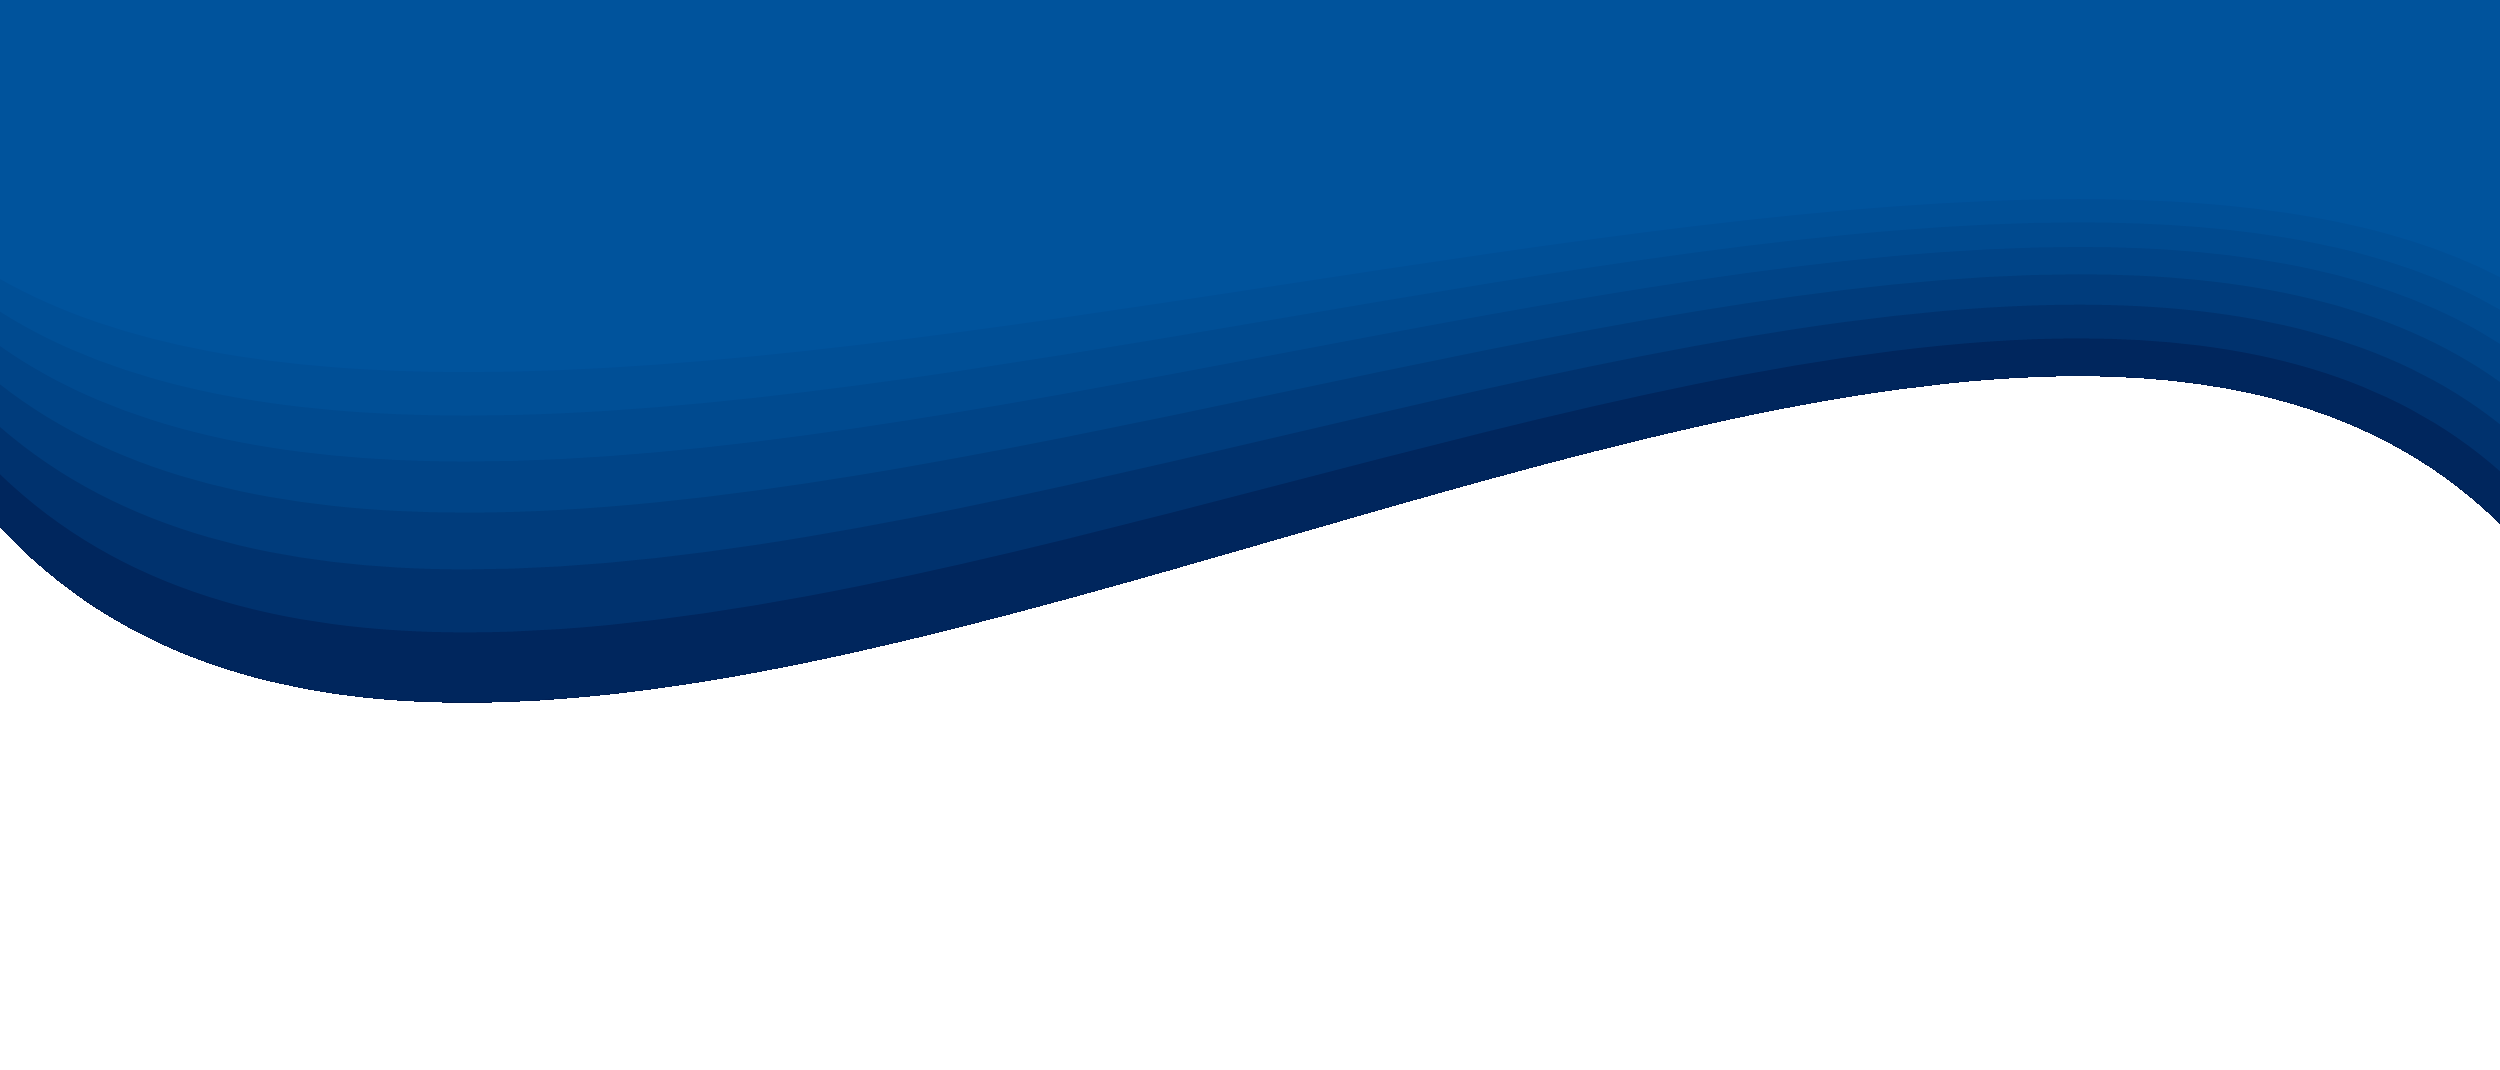 2500x1070 Waves Png Hd Border Transparent Waves Hd Border.png Images. Pluspng